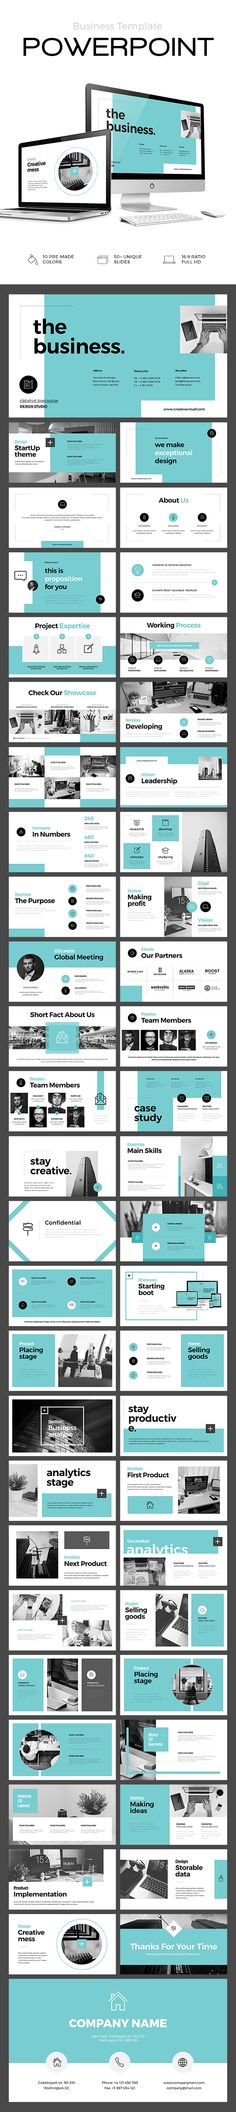 Business Powerpoint Template — PPT #presentation #statistics • Available here ➝ https://graphicriver.net/item/business-powerpoint-template/20845830?ref=pxcr